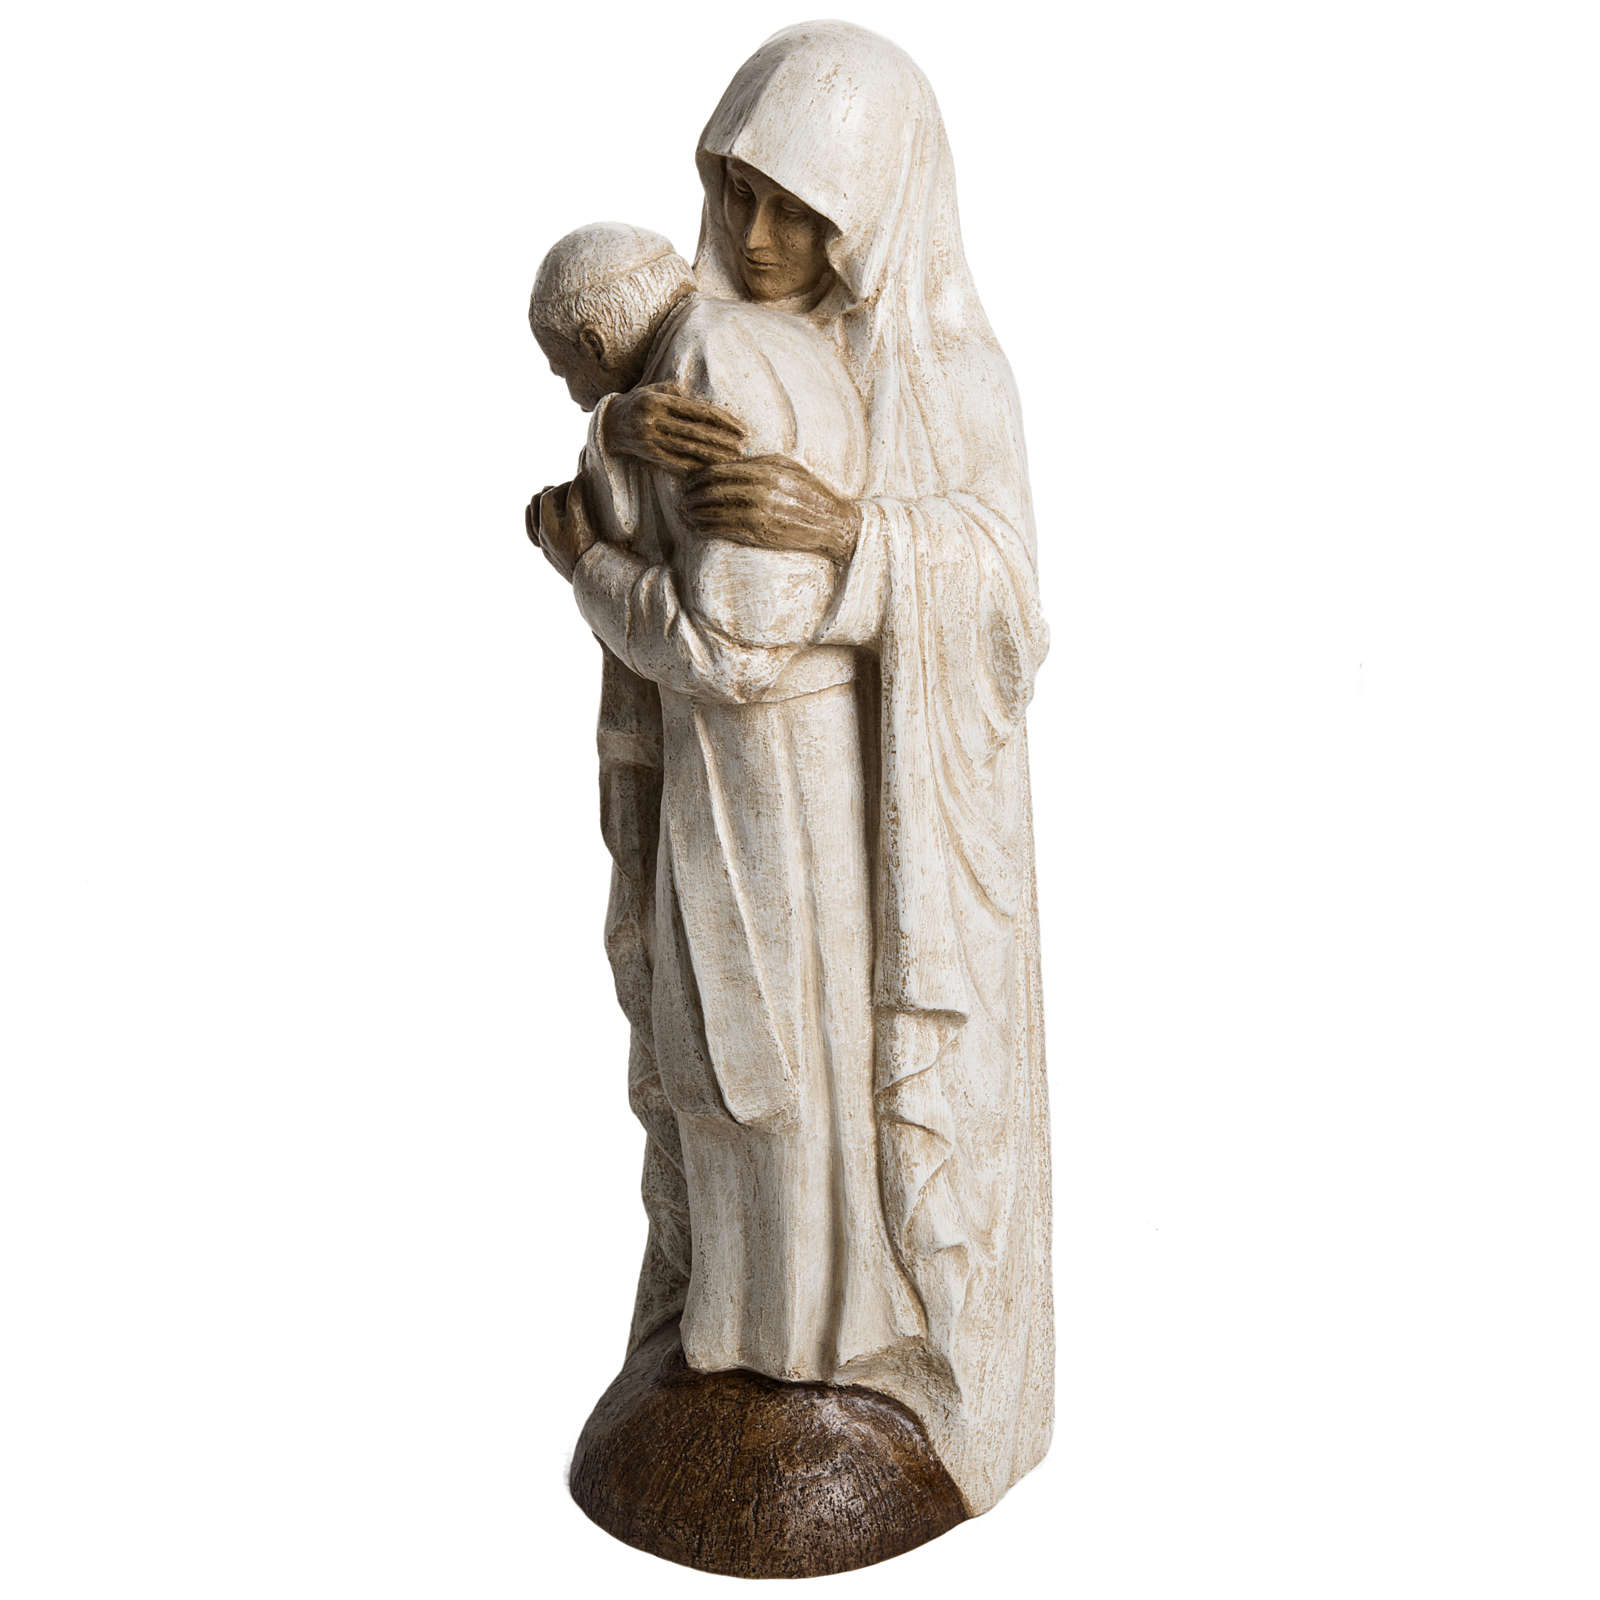 Virgin Mary and Jean Paul II stone statues 56 cm, Bethlehem Nuns 4